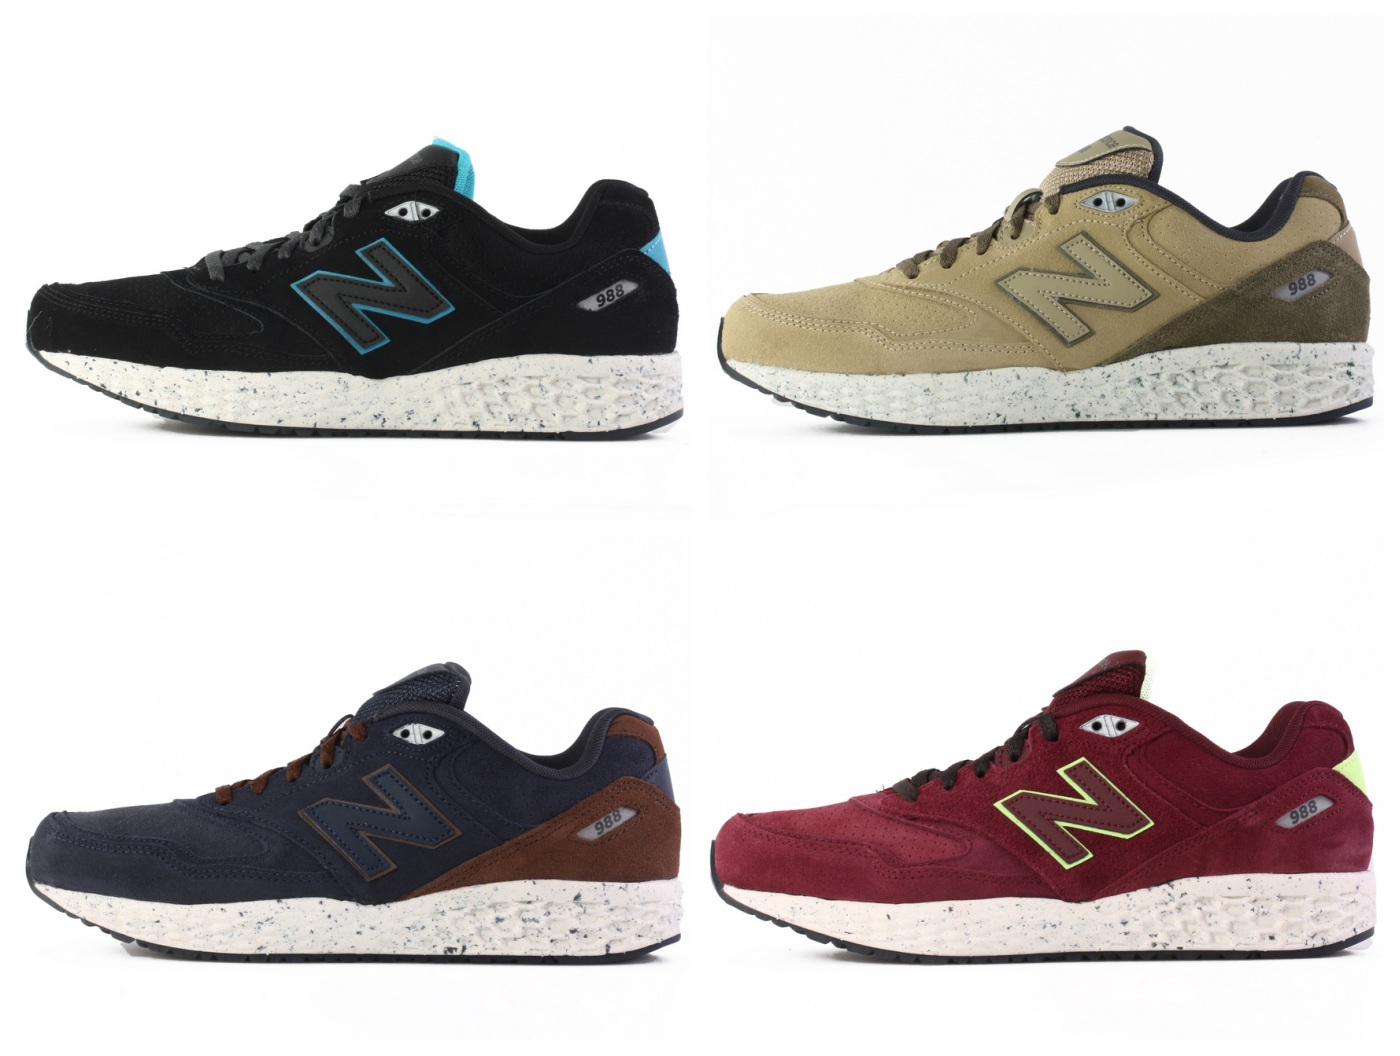 ac96111d6ebae Suede light professional new balance New Balance M988BO/OB/OV/OF men running  shoes - Taobao Depot, Taobao Agent